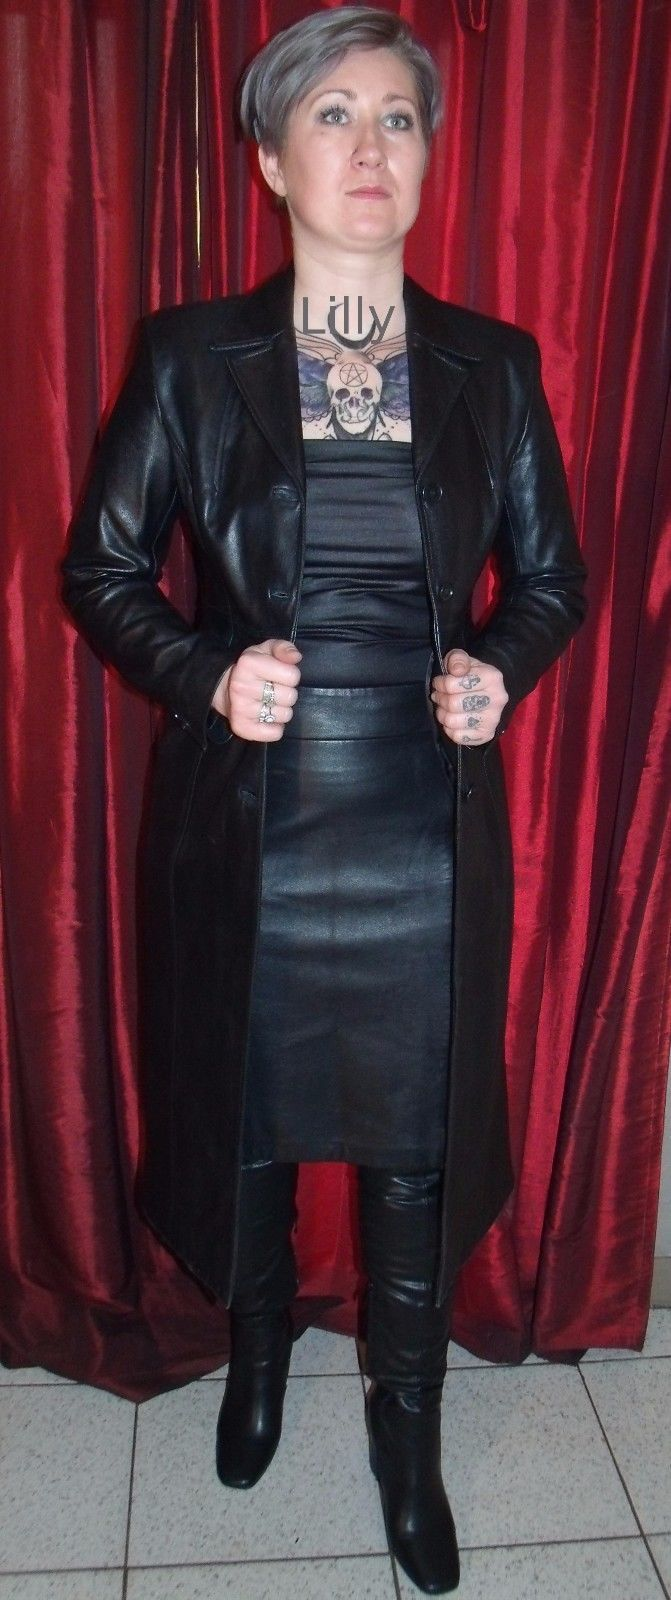 """Karen Millen make ladies long black leather coat, marked size 10, size 8-10 UK, size 6-8 USA, size 34-36 Eur, chest 36"""" maximum, underarm sleeve length 17 """", back length from base of collar to hem 46 """", two flapped front pockets, four buttons, rear vent 23"""". 